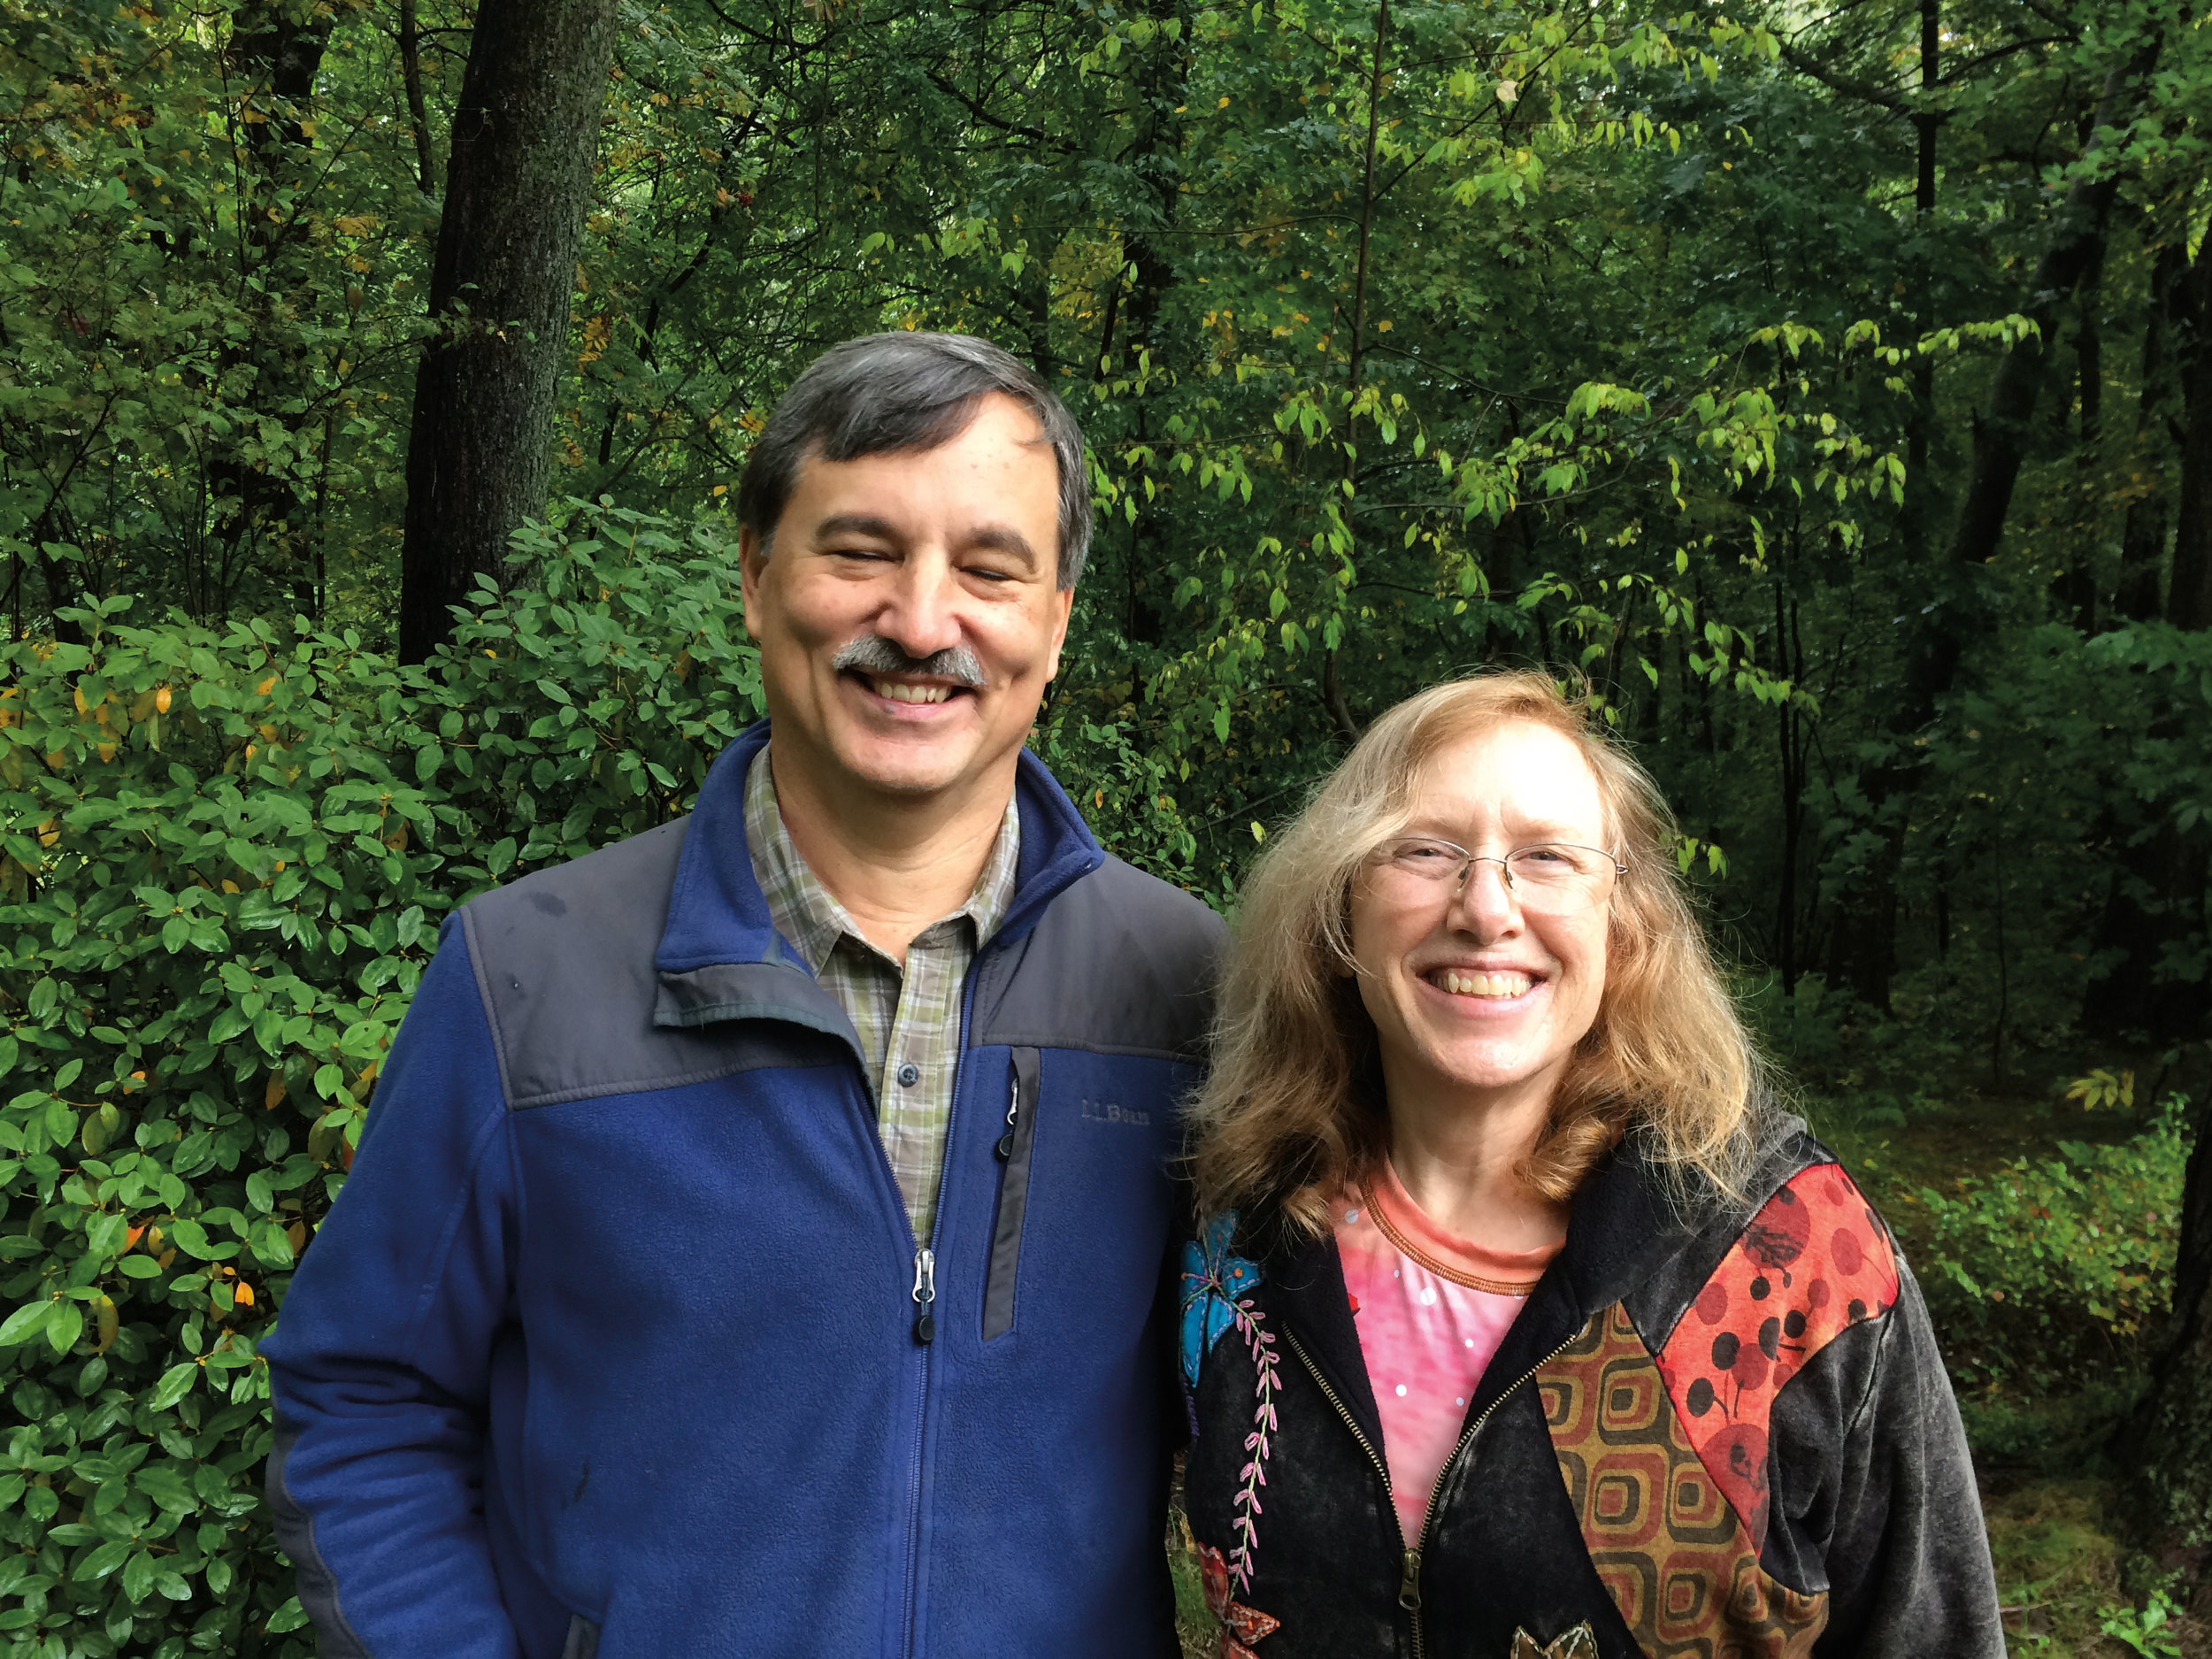 Cathy Gallagher '77 stopped to see formmate Jon Panek during her cross-country road trip.